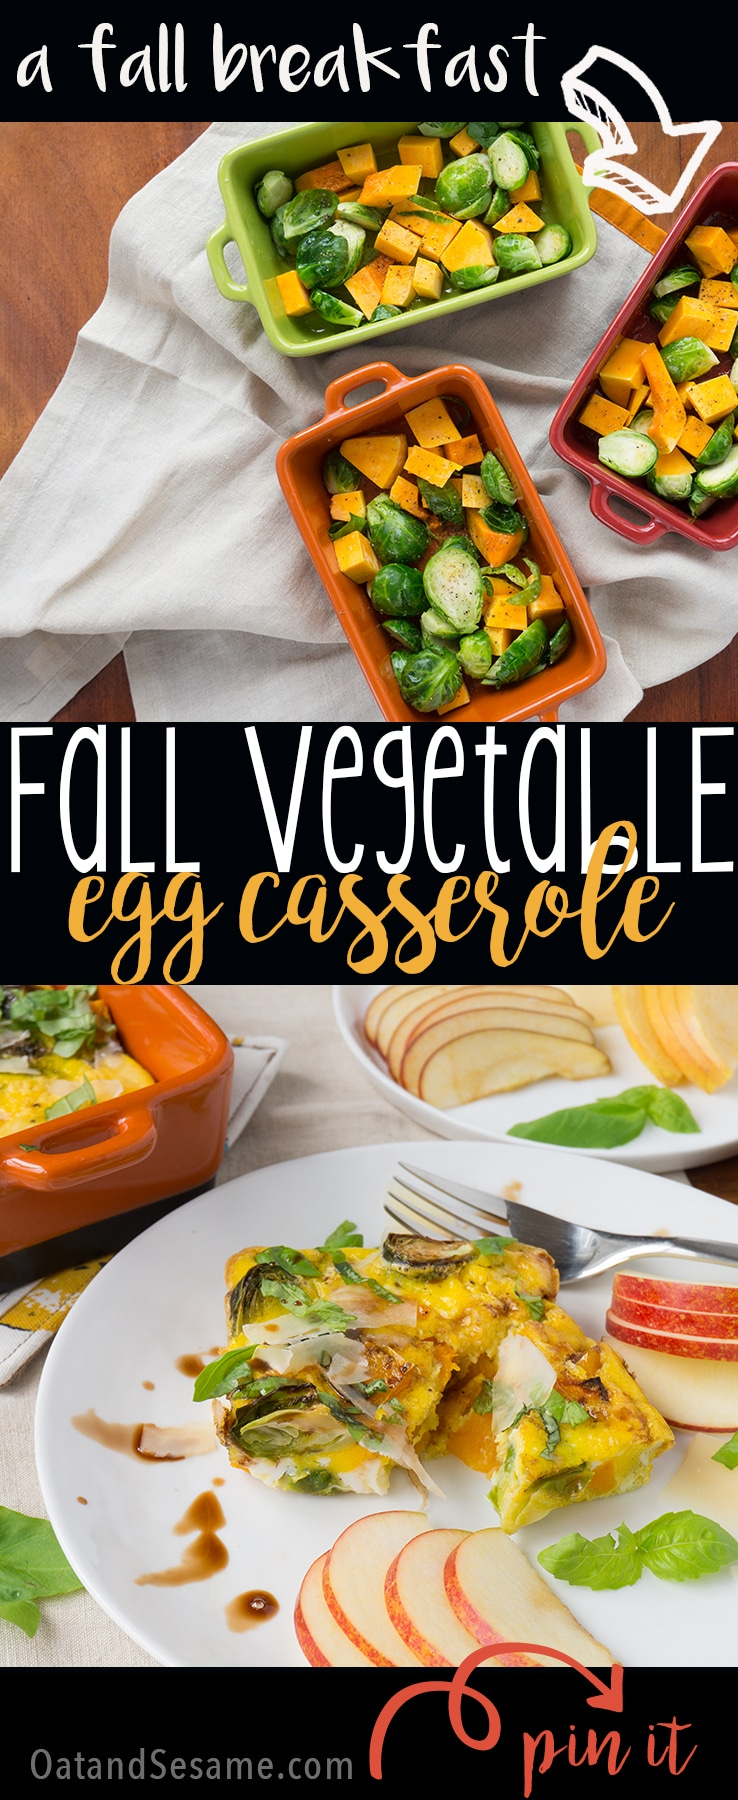 A Fall inspired breakfast casserole - brussels sprouts, butternut squash, shaved parmesan and basil | #BREAKFAST | #EGGS | #CASSEROLE | #FALL | #BRUSSELS SPROUTS | #Recipes at OatandSesame.com